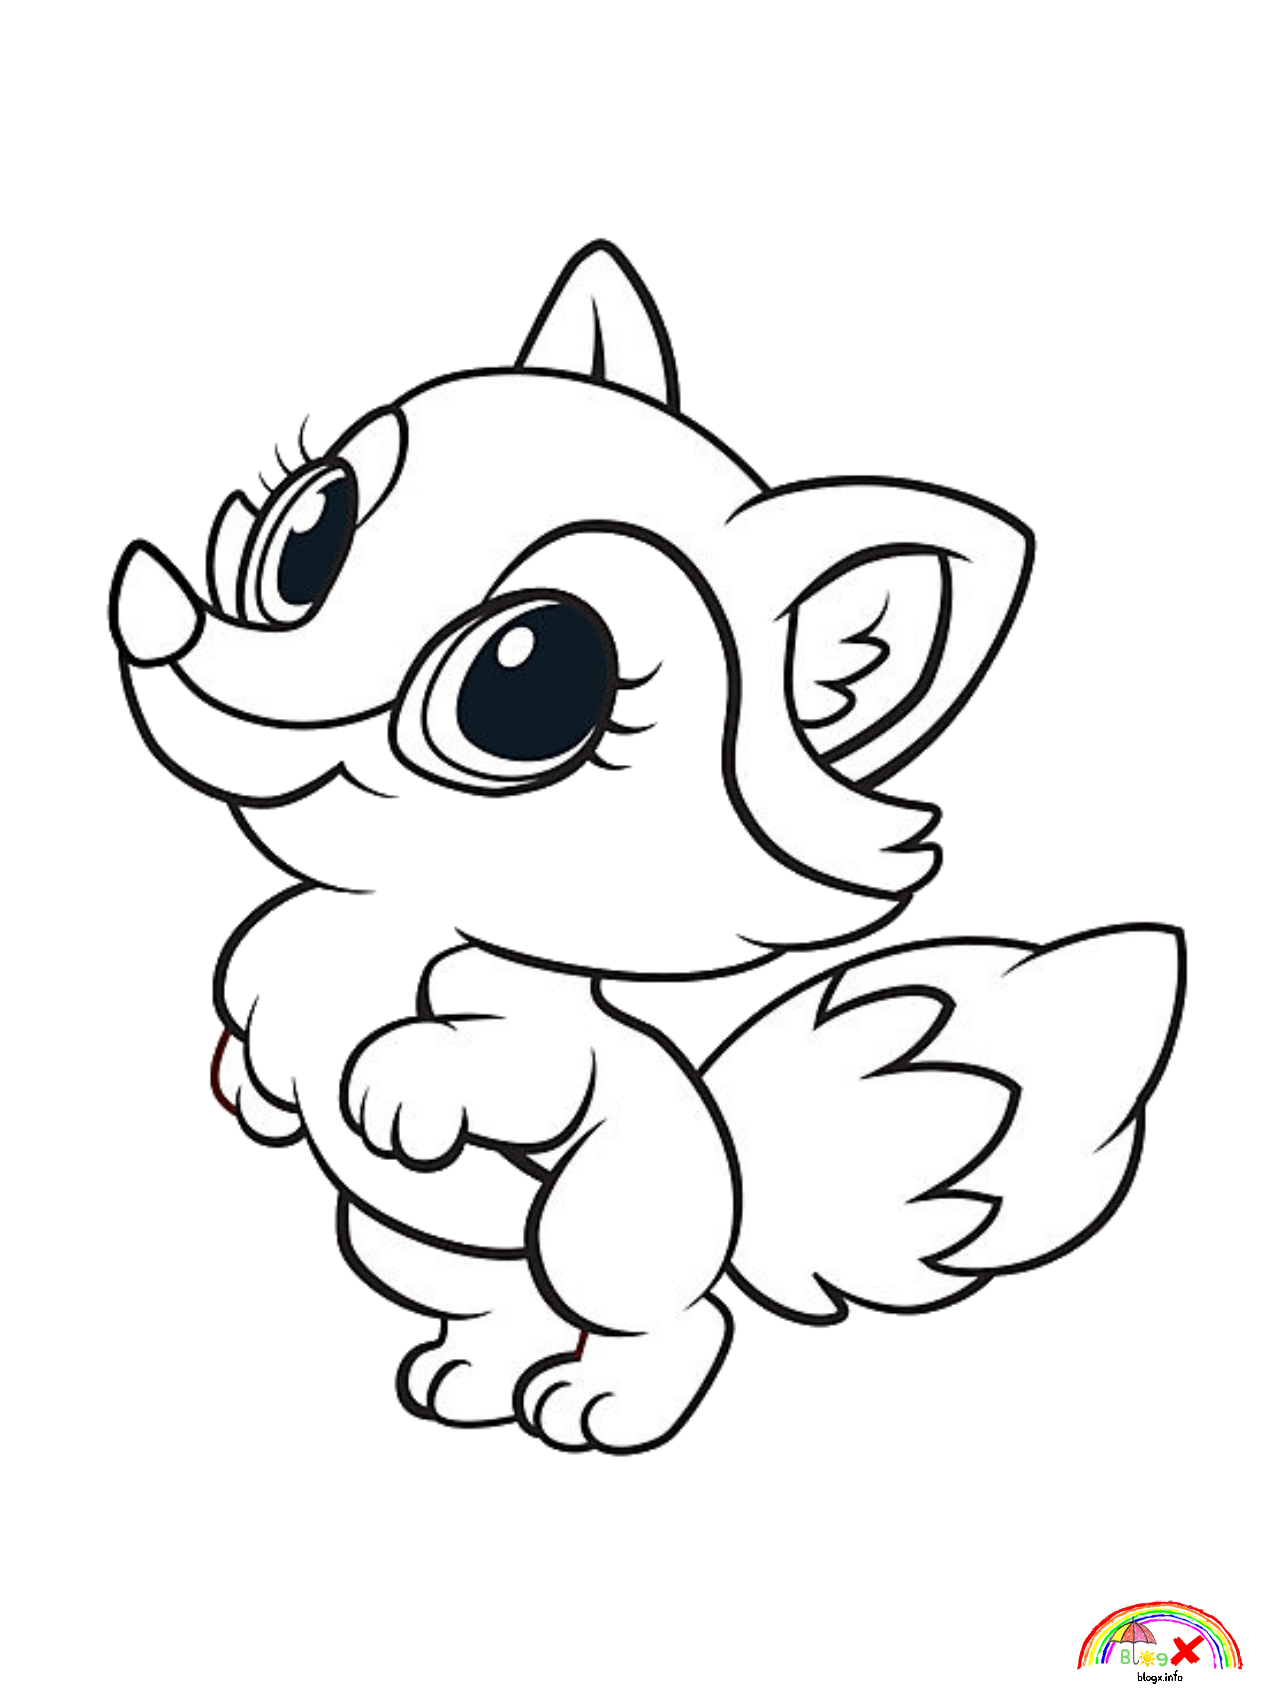 Free download collection of cute baby fox coloring pages